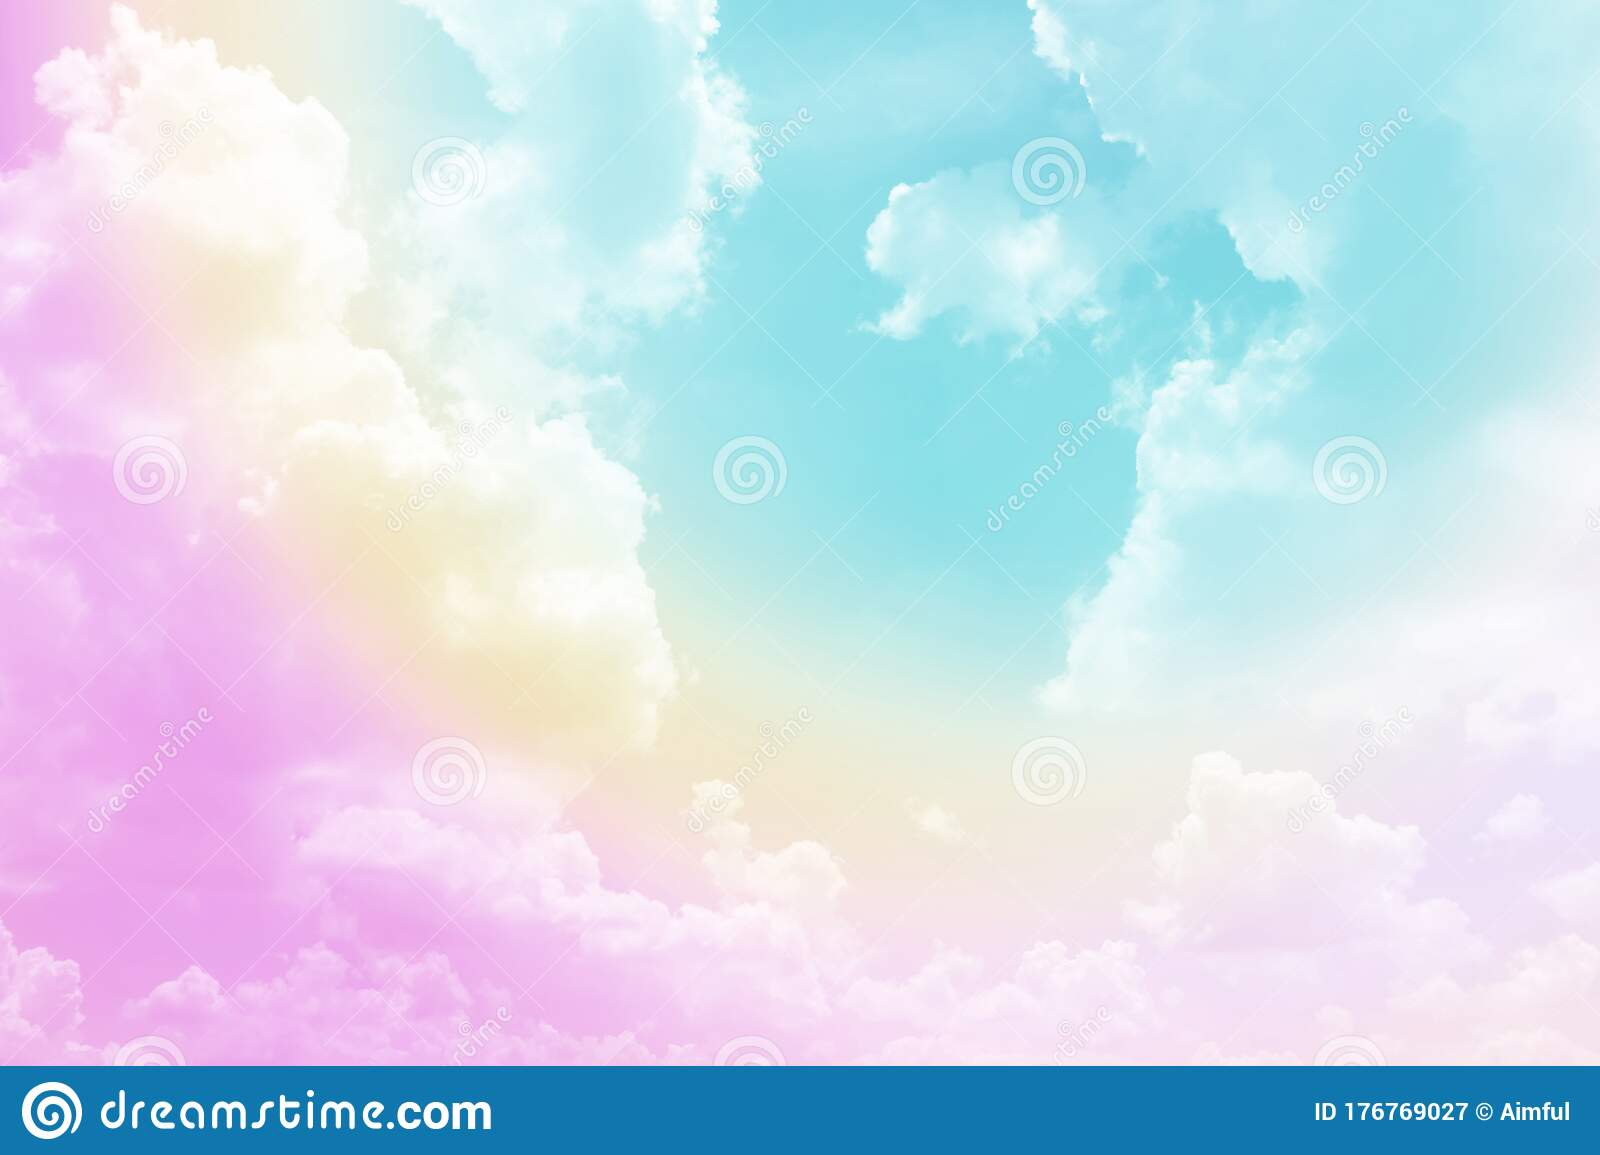 Beautiful Pastel Color With Rainbow Shade On White Fluffy Clouds Colorful Blue Sky On Background Upward View And Copy Space Stock Image Image Of Blue Color 176769027